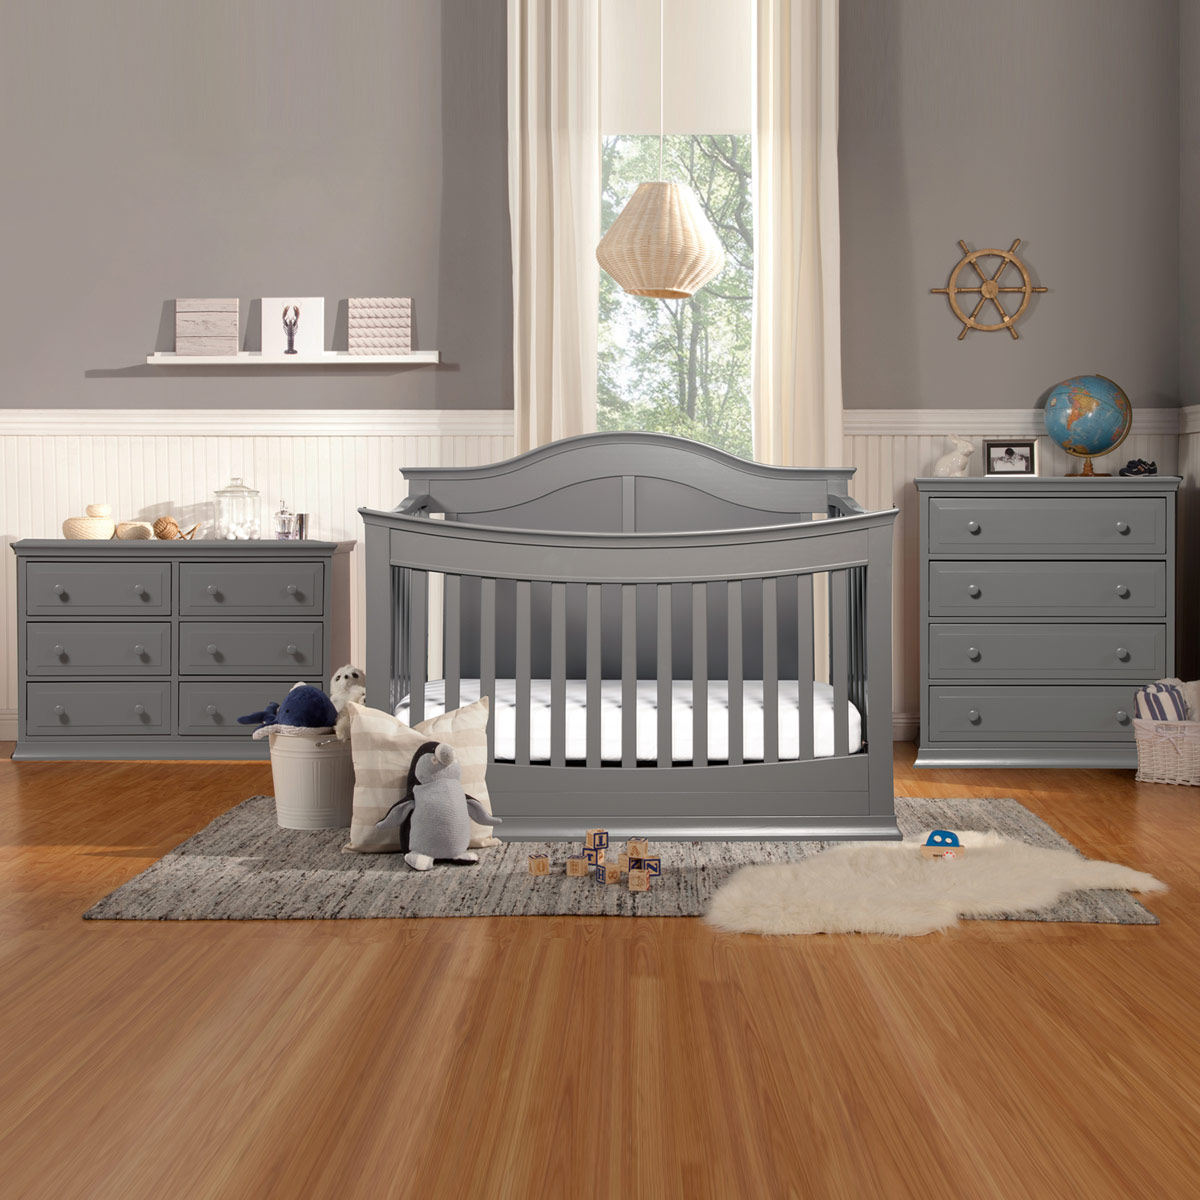 Davinci Meadow 3 Piece Nursery Set 4 In 1 Convertible Crib Signature Drawer Dresser And 6 Double Slate Free Shipping